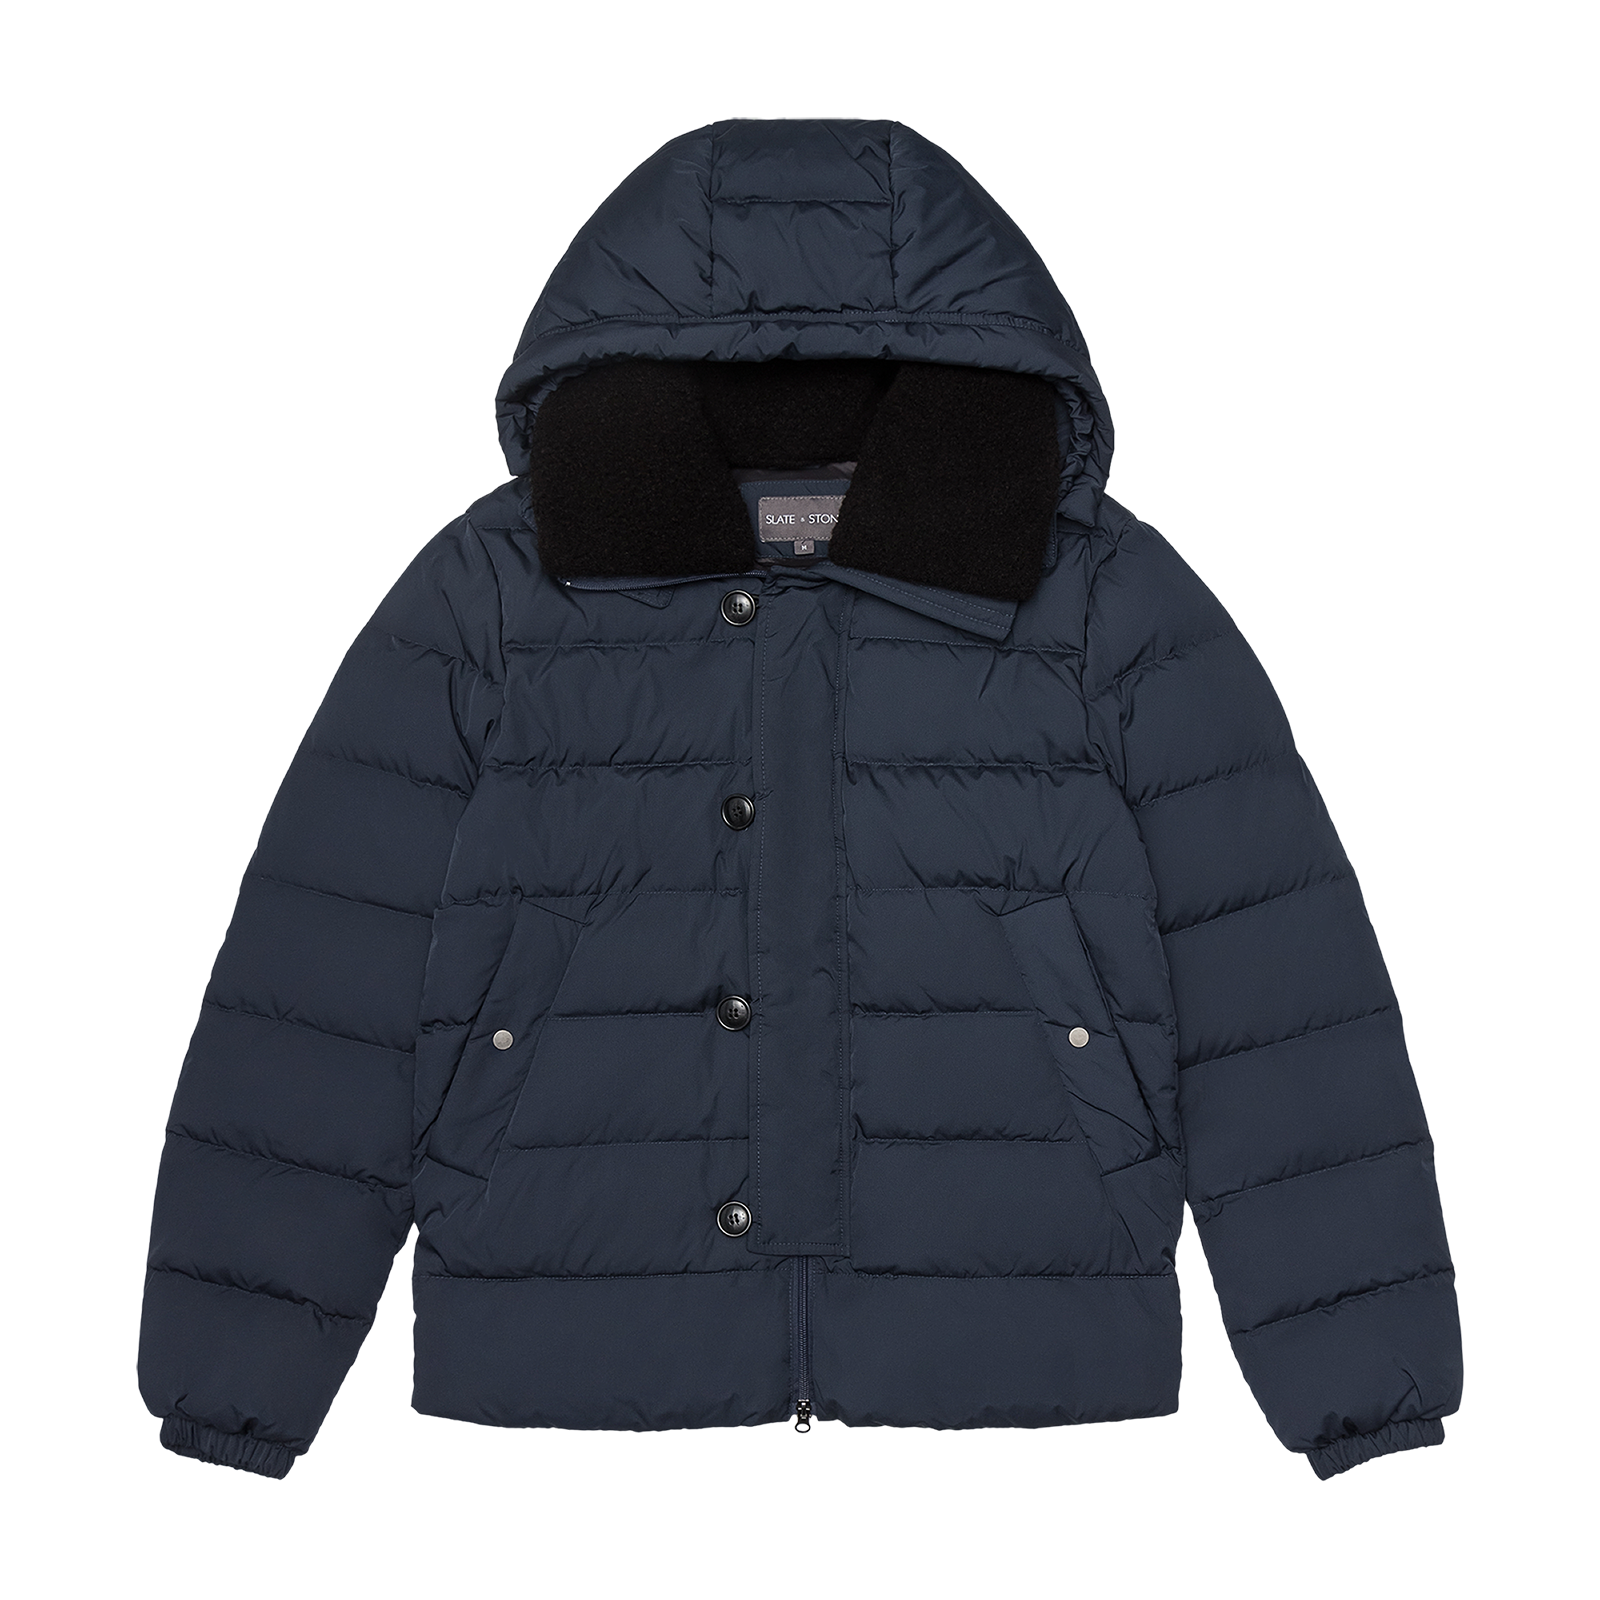 Puffer coat product photography